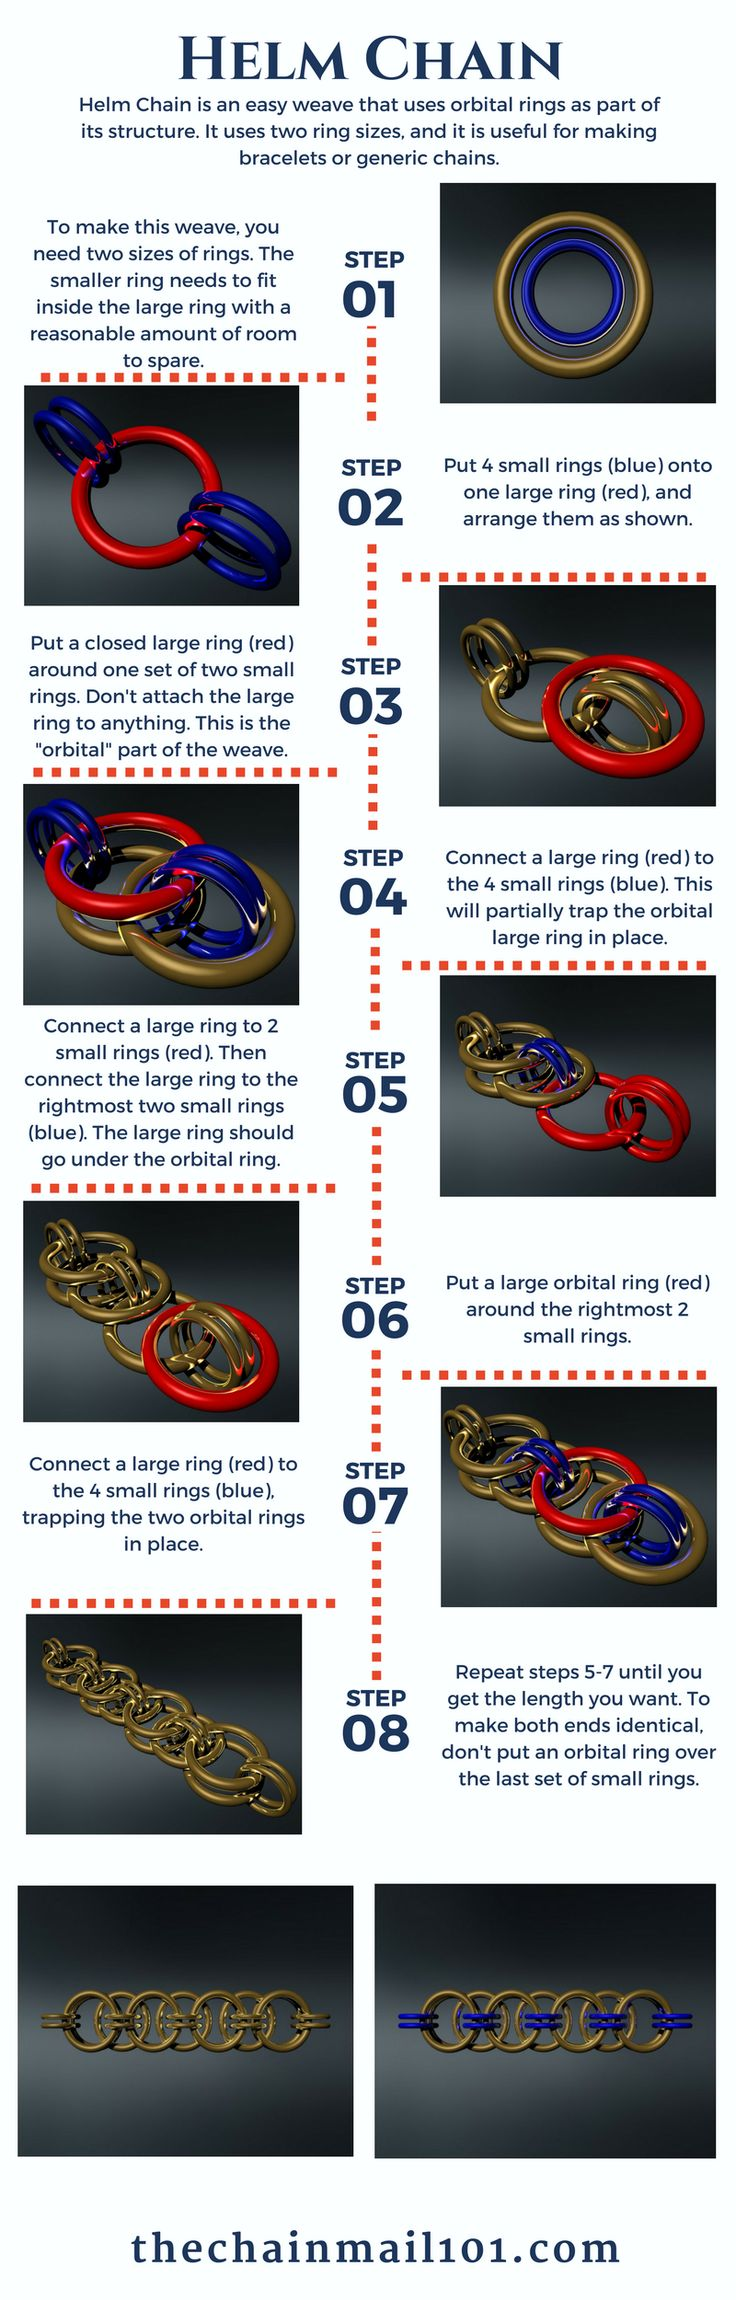 Learn how to make the Helm Chain chainmail weave with this helpful infographic! - thechainmail101.com/helm-chain